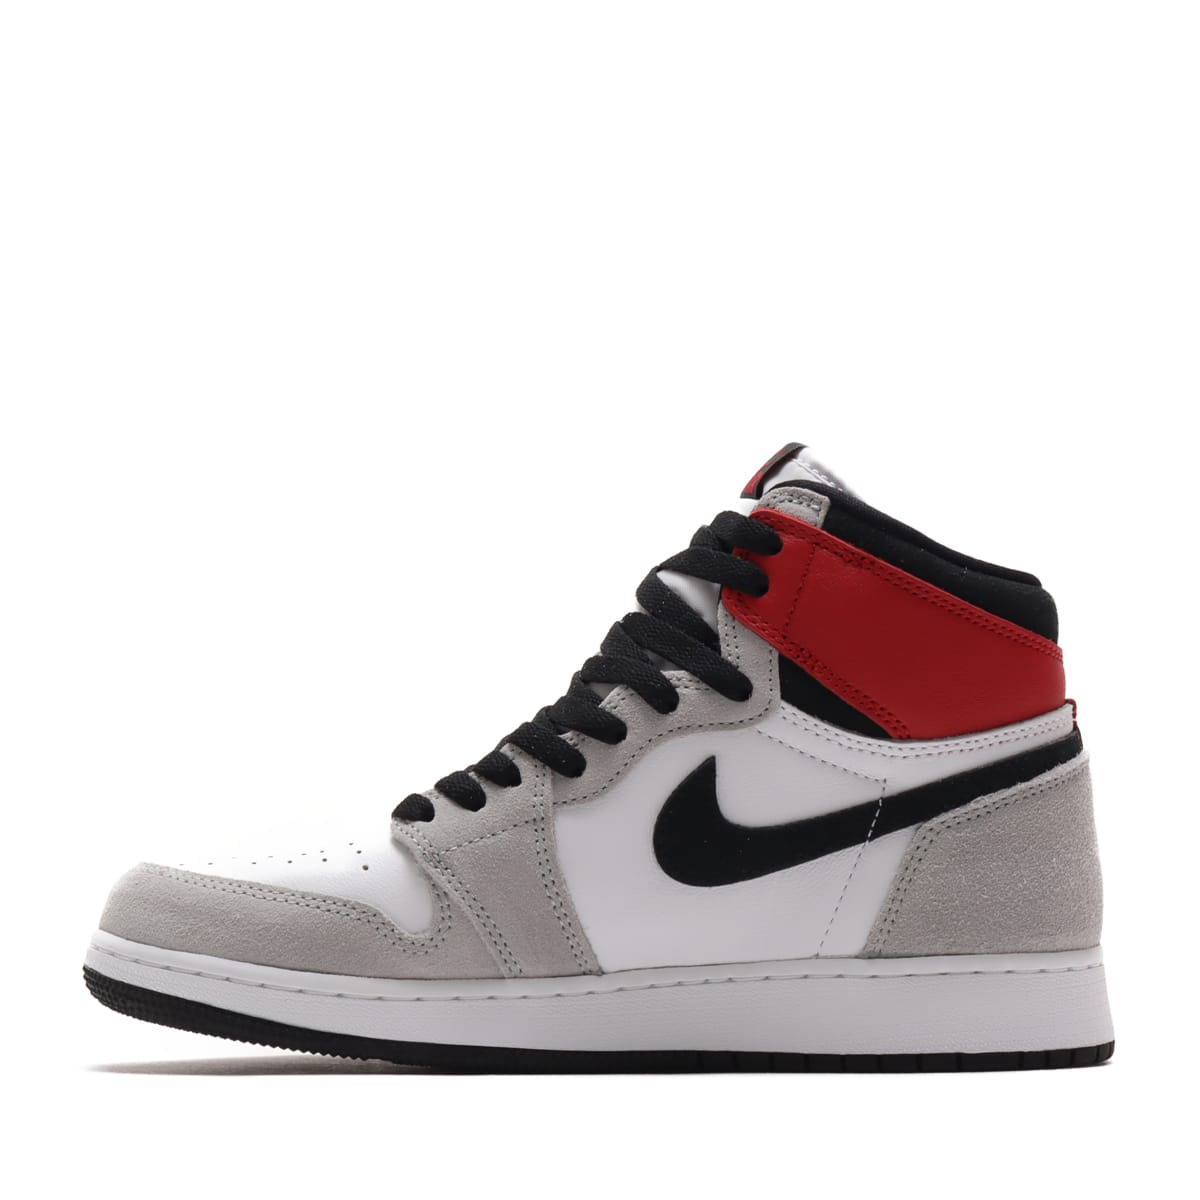 JORDAN BRAND AIR JORDAN 1 RETRO HIGH OG GS